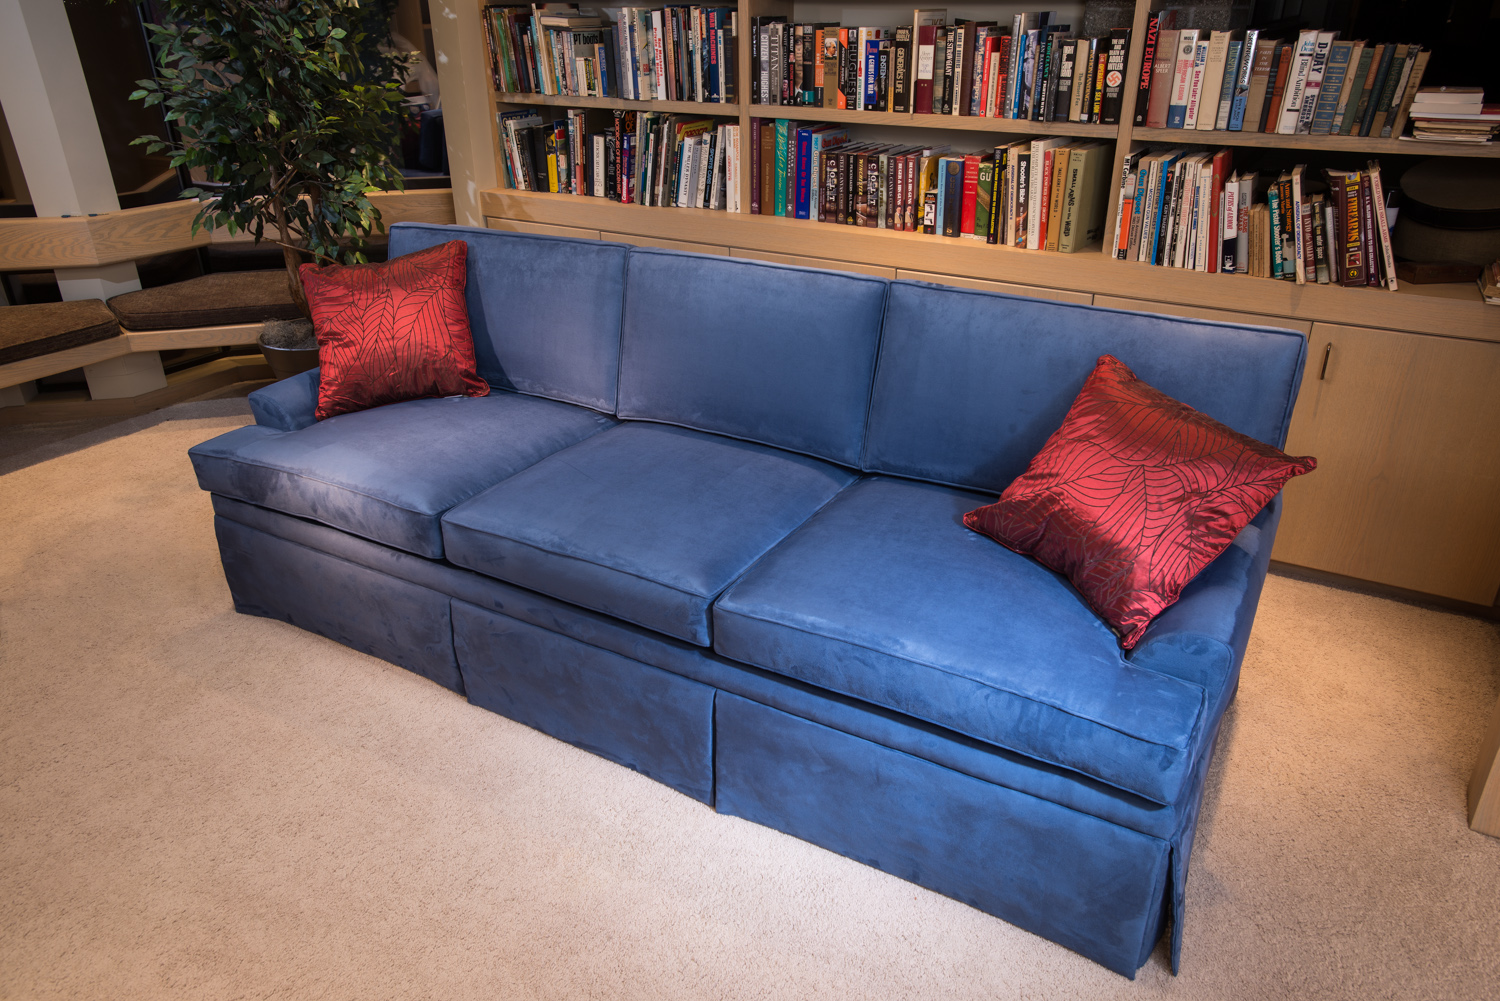 Couchbunker in a study